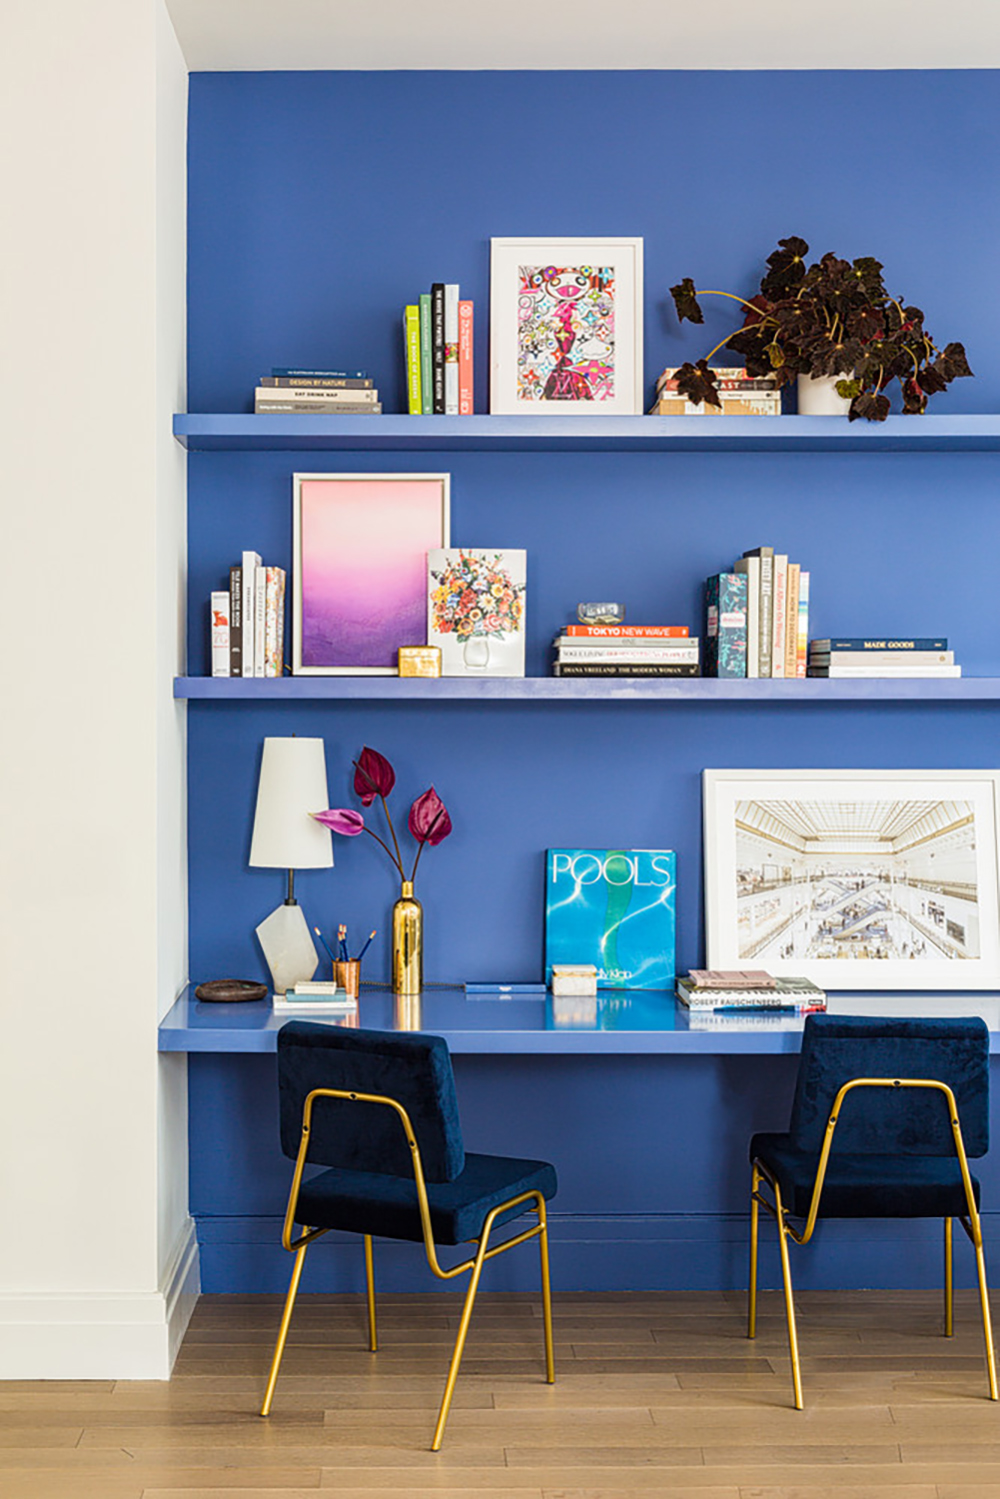 Vivid blue wall is very inspiring in this office with colourful books and accessories - 35 ideas for blue wall colour in home decoration | Aliz's Wonderland